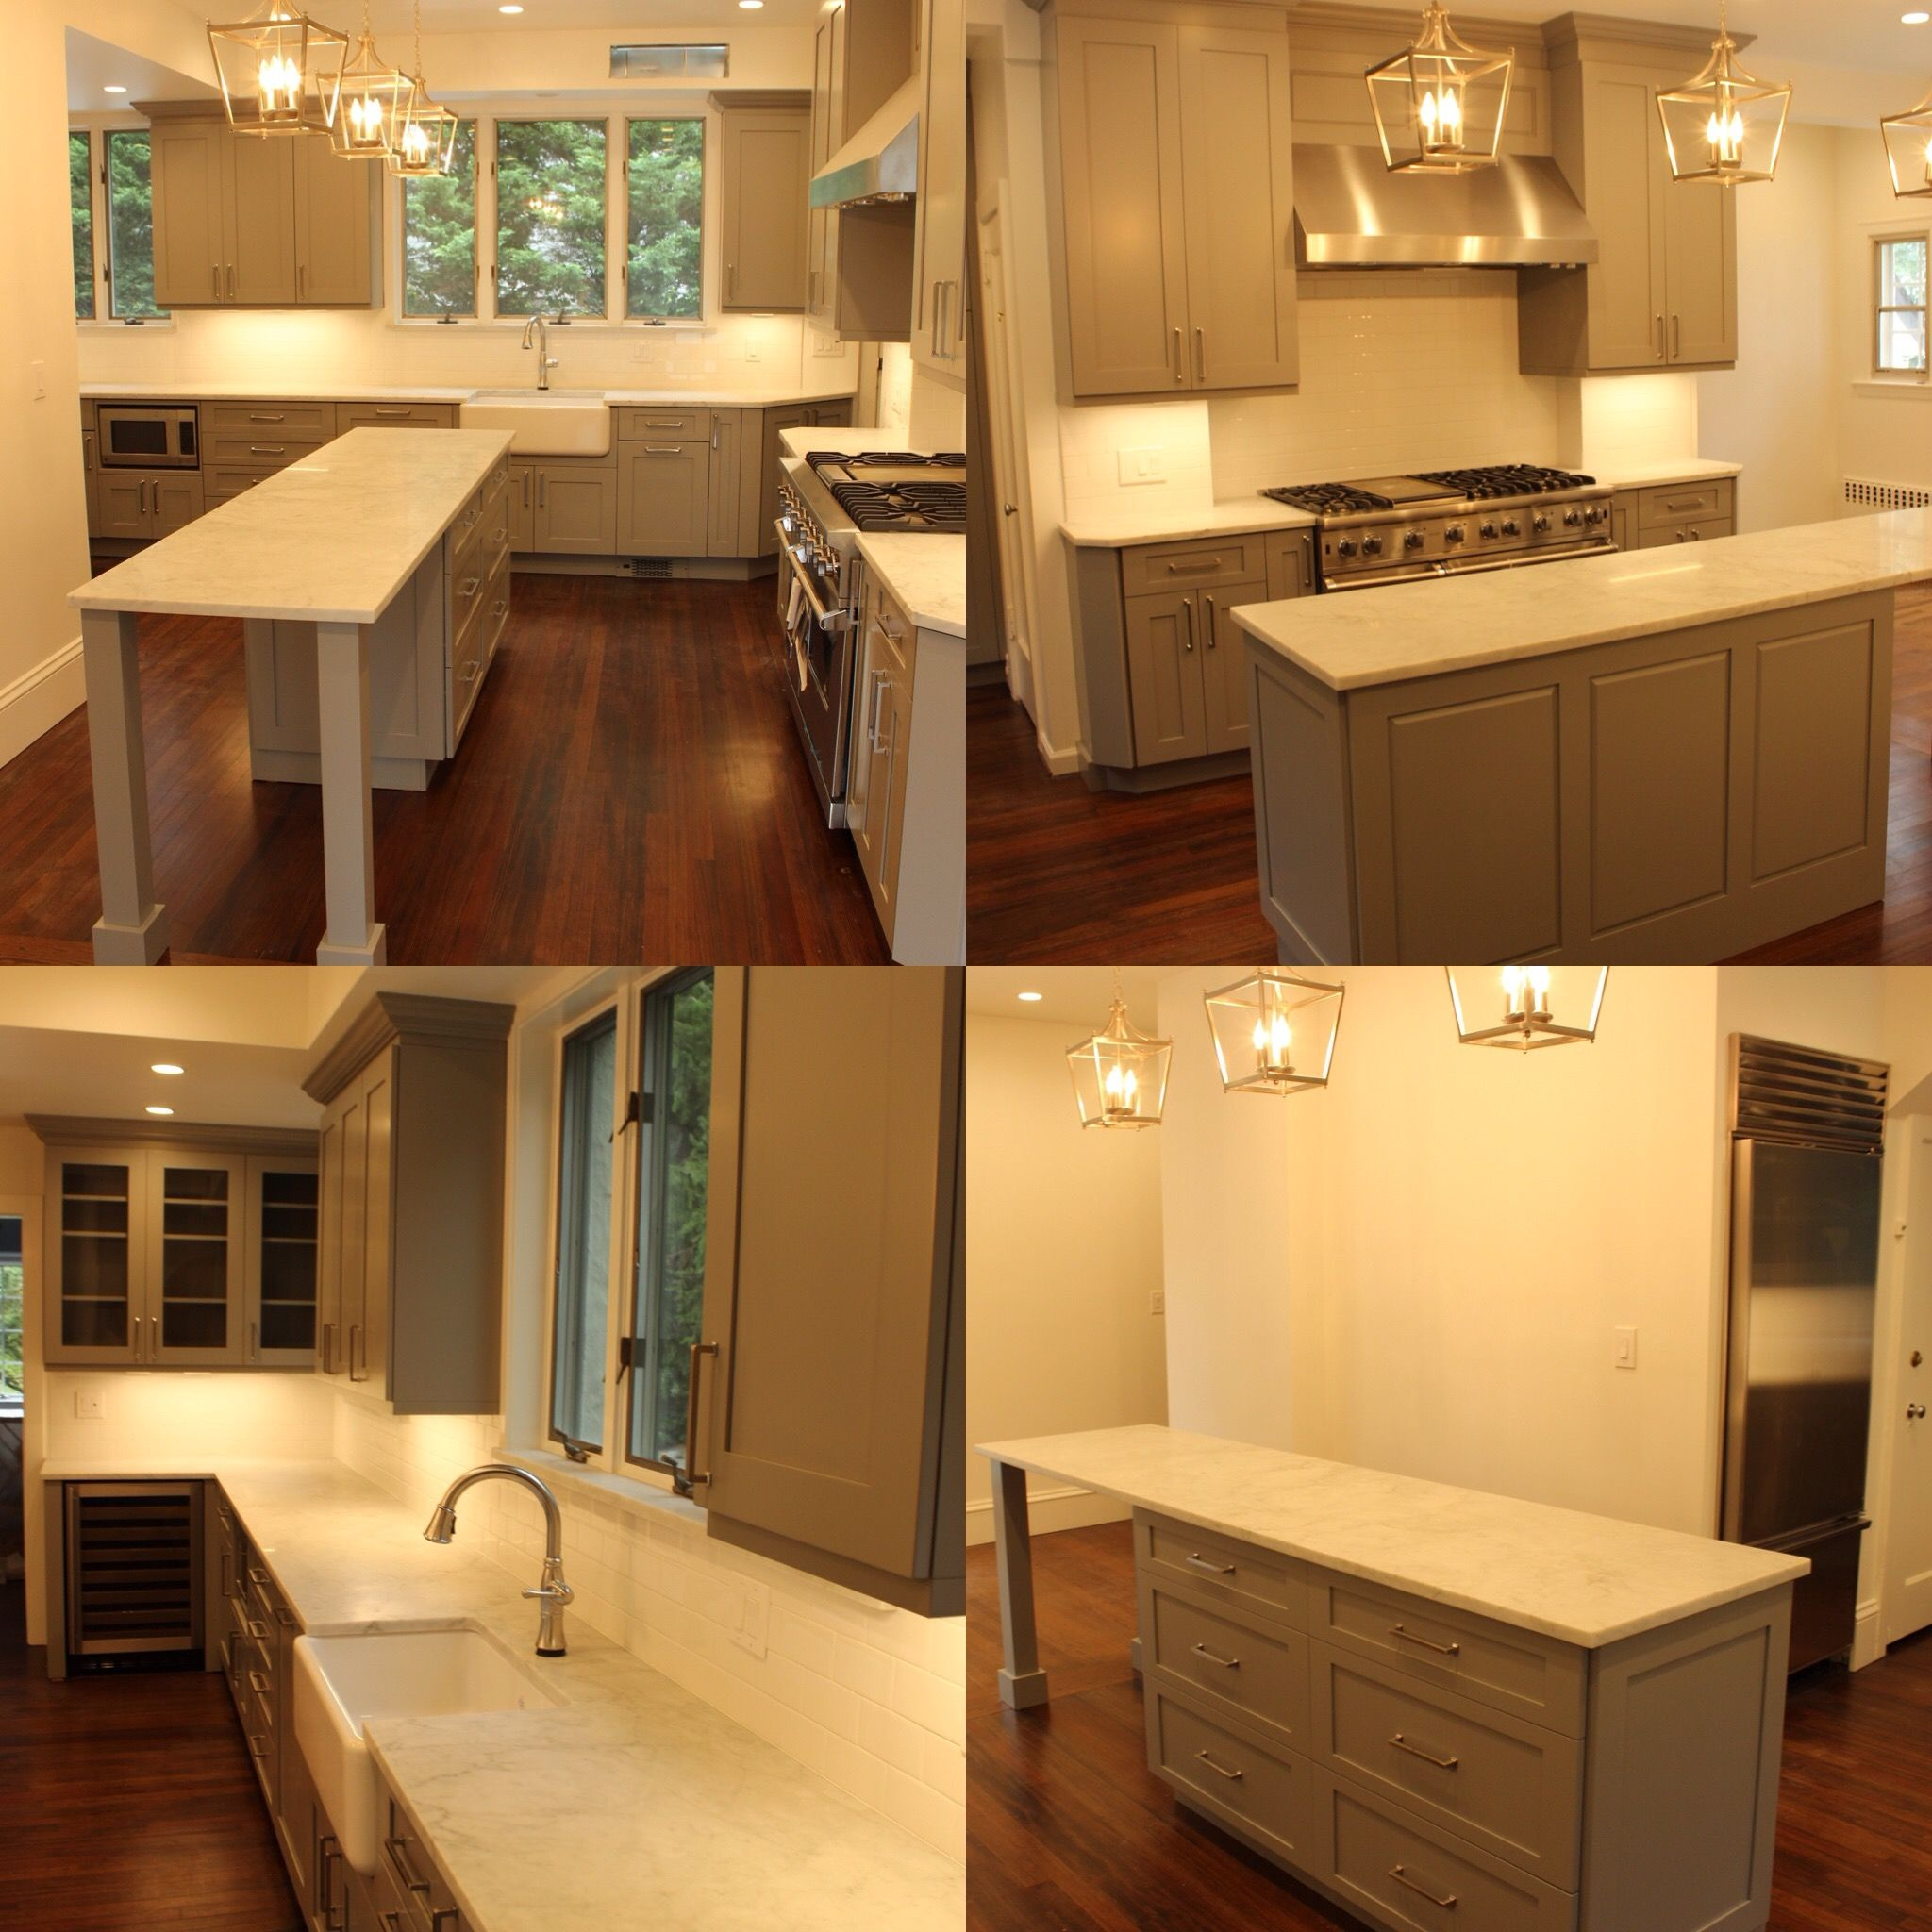 Here Is A Beautiful Kitchen Project That Was Completed With The Help Of Majestic Kitchens Baths Designer Jodi Duer Kitchen And Bath Kitchens And Bath Kitchen